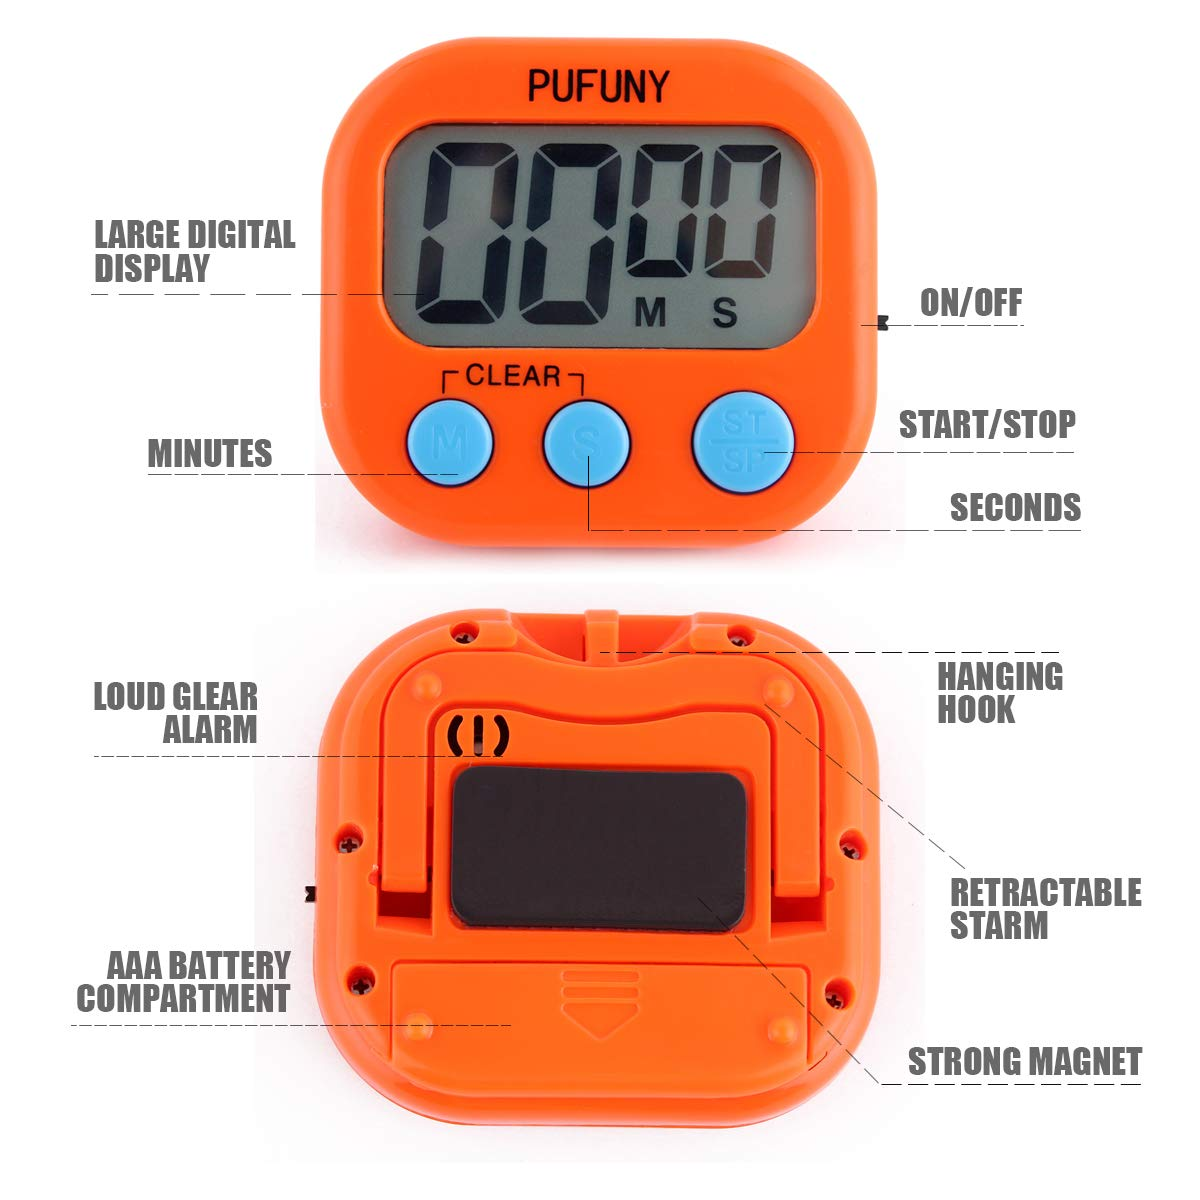 Pink and Orange PUFUNY Digital Kitchen Timer,Cooking Timer,Large Display,Strong Magnet Back,Loud Alarm,Stand,for Cooking Baking Sports Games Office,User Guide Included,2 Pack